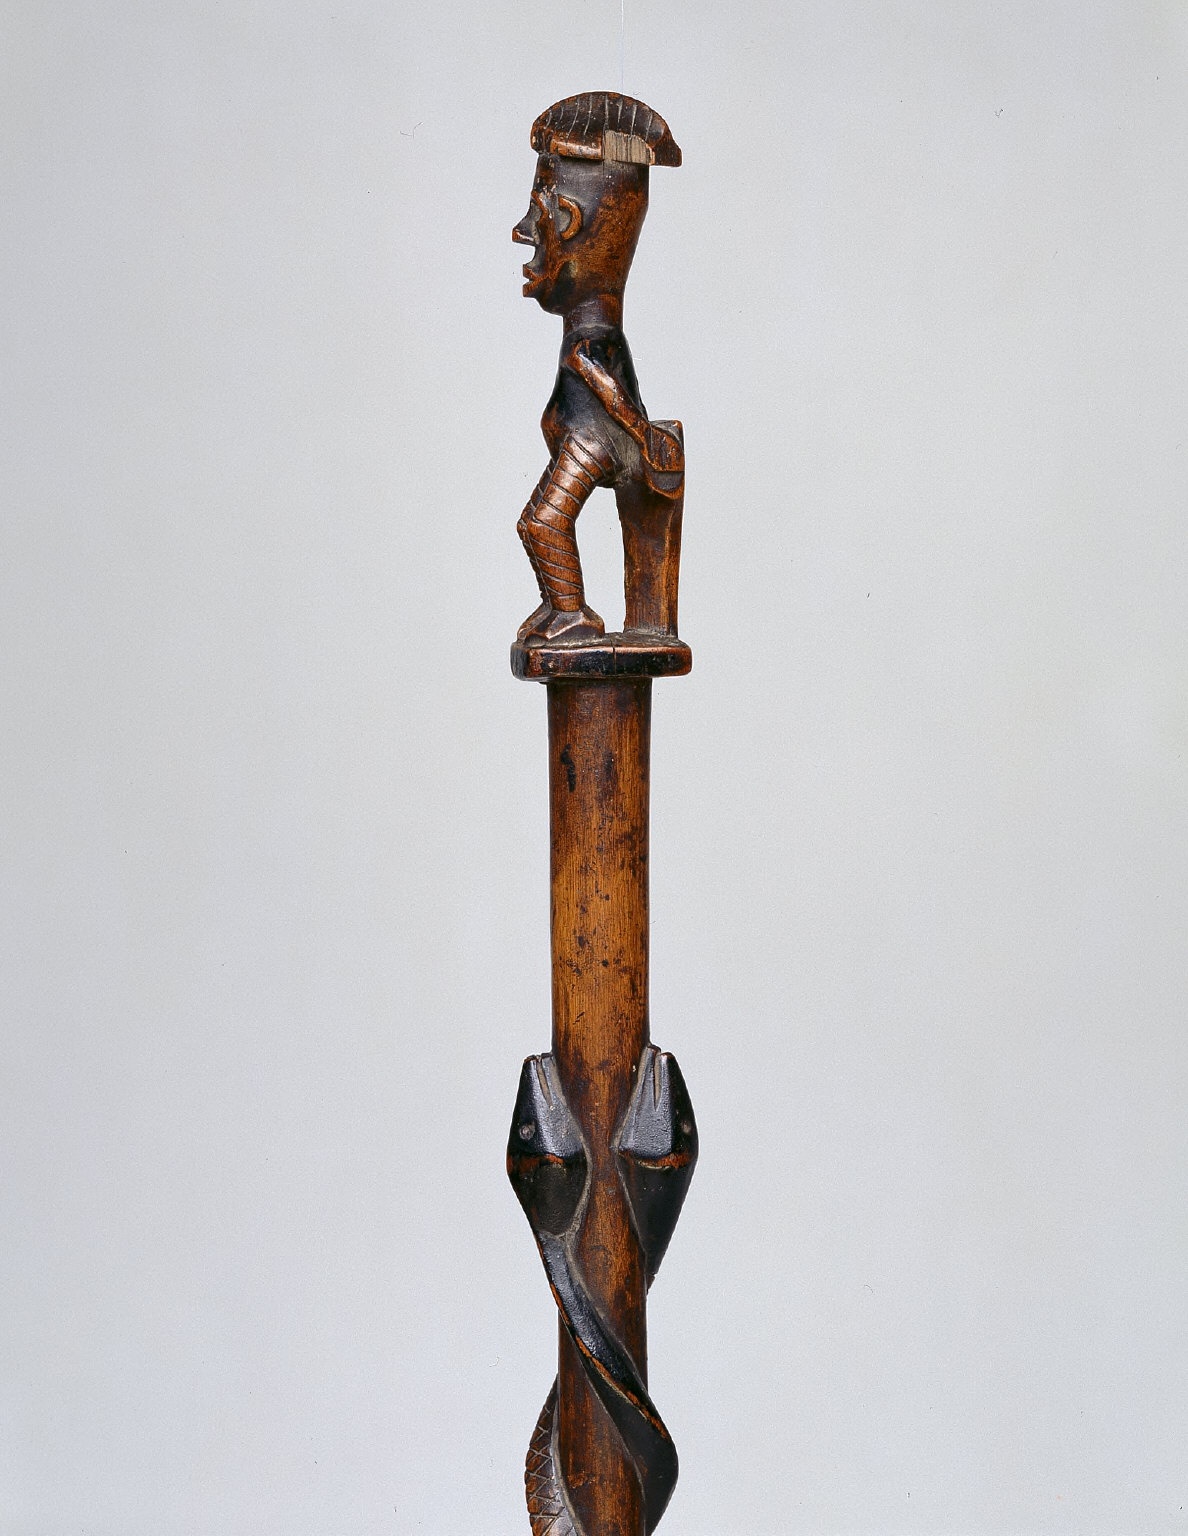 Staff with Figure and Snakes